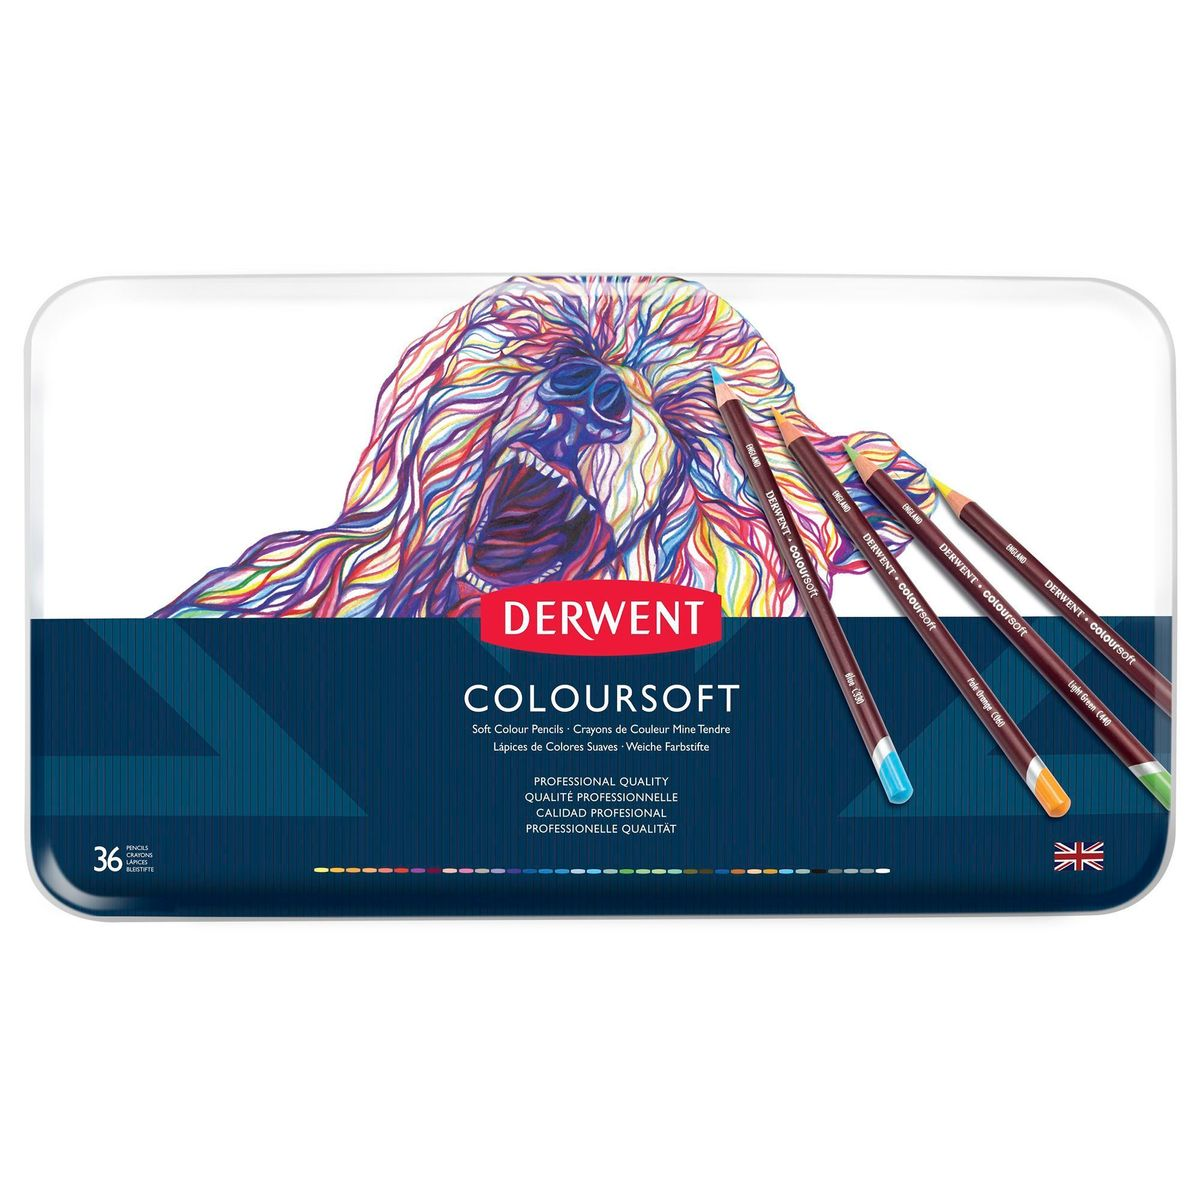 Kit Lápis Derwent Coloursoft c/ 36 cores